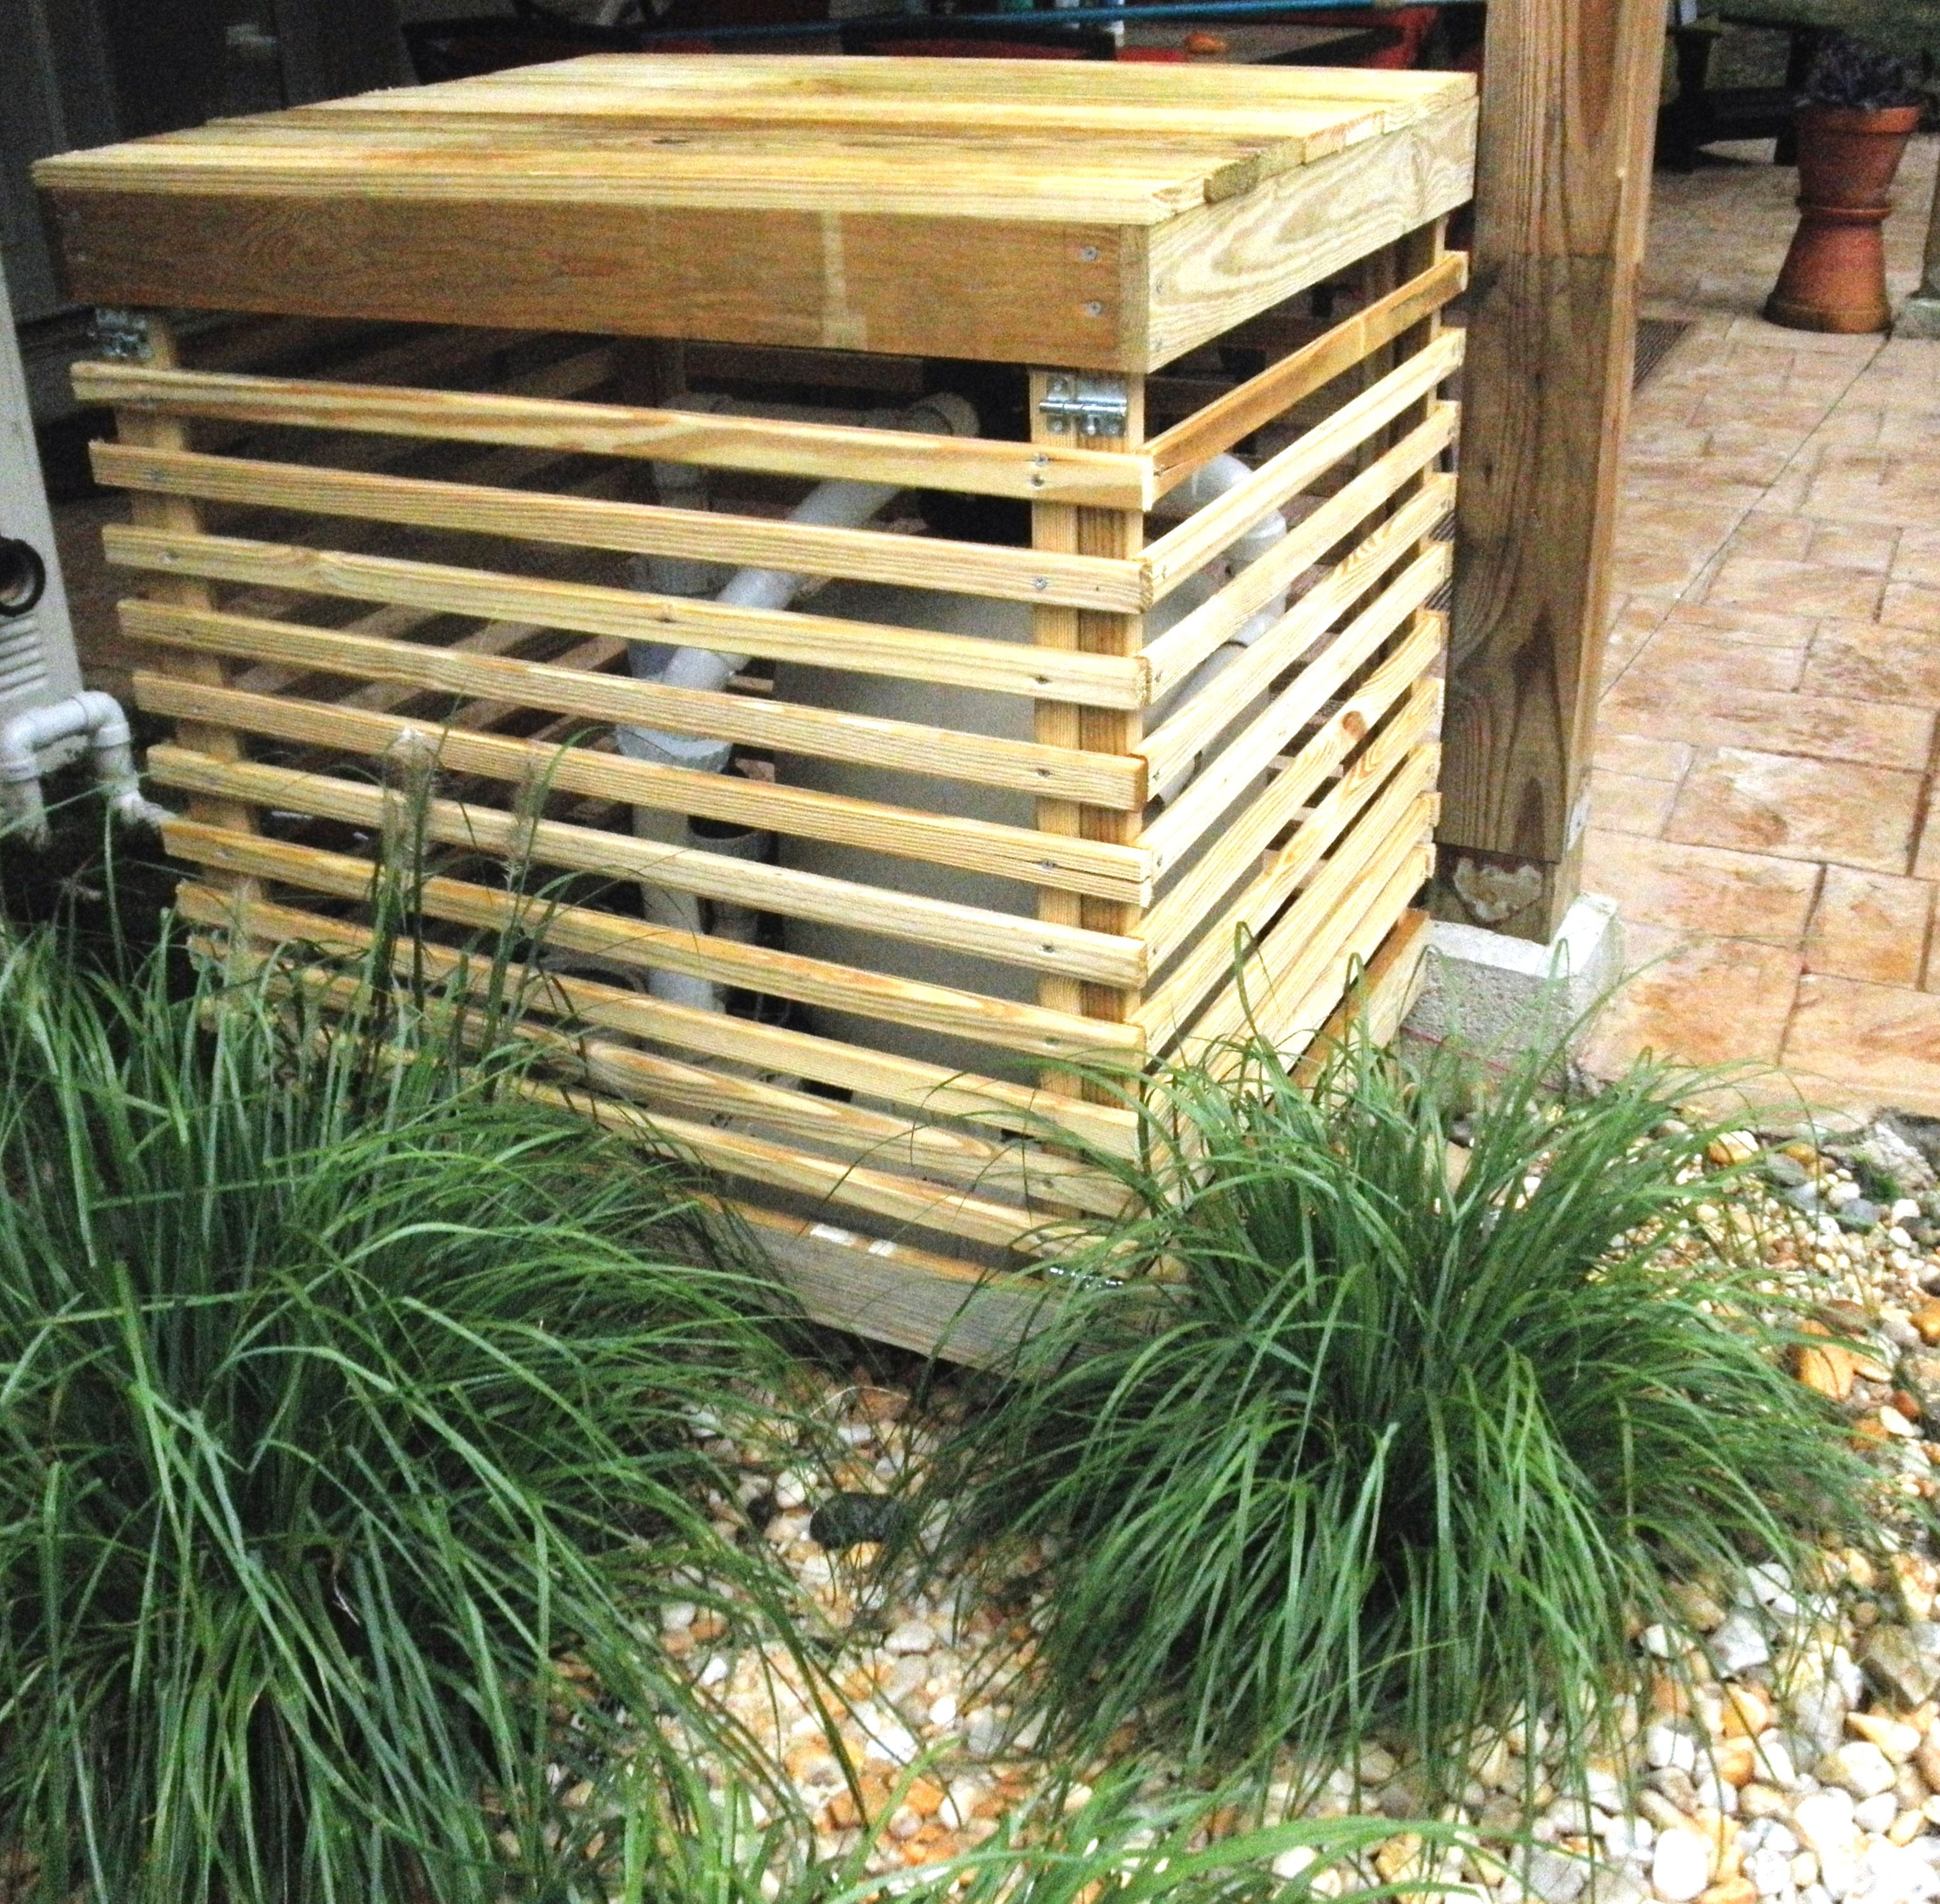 Pin By Pamela Fragoso On Gardening Pool Pump Pool Decor Pool Pumps And Filters